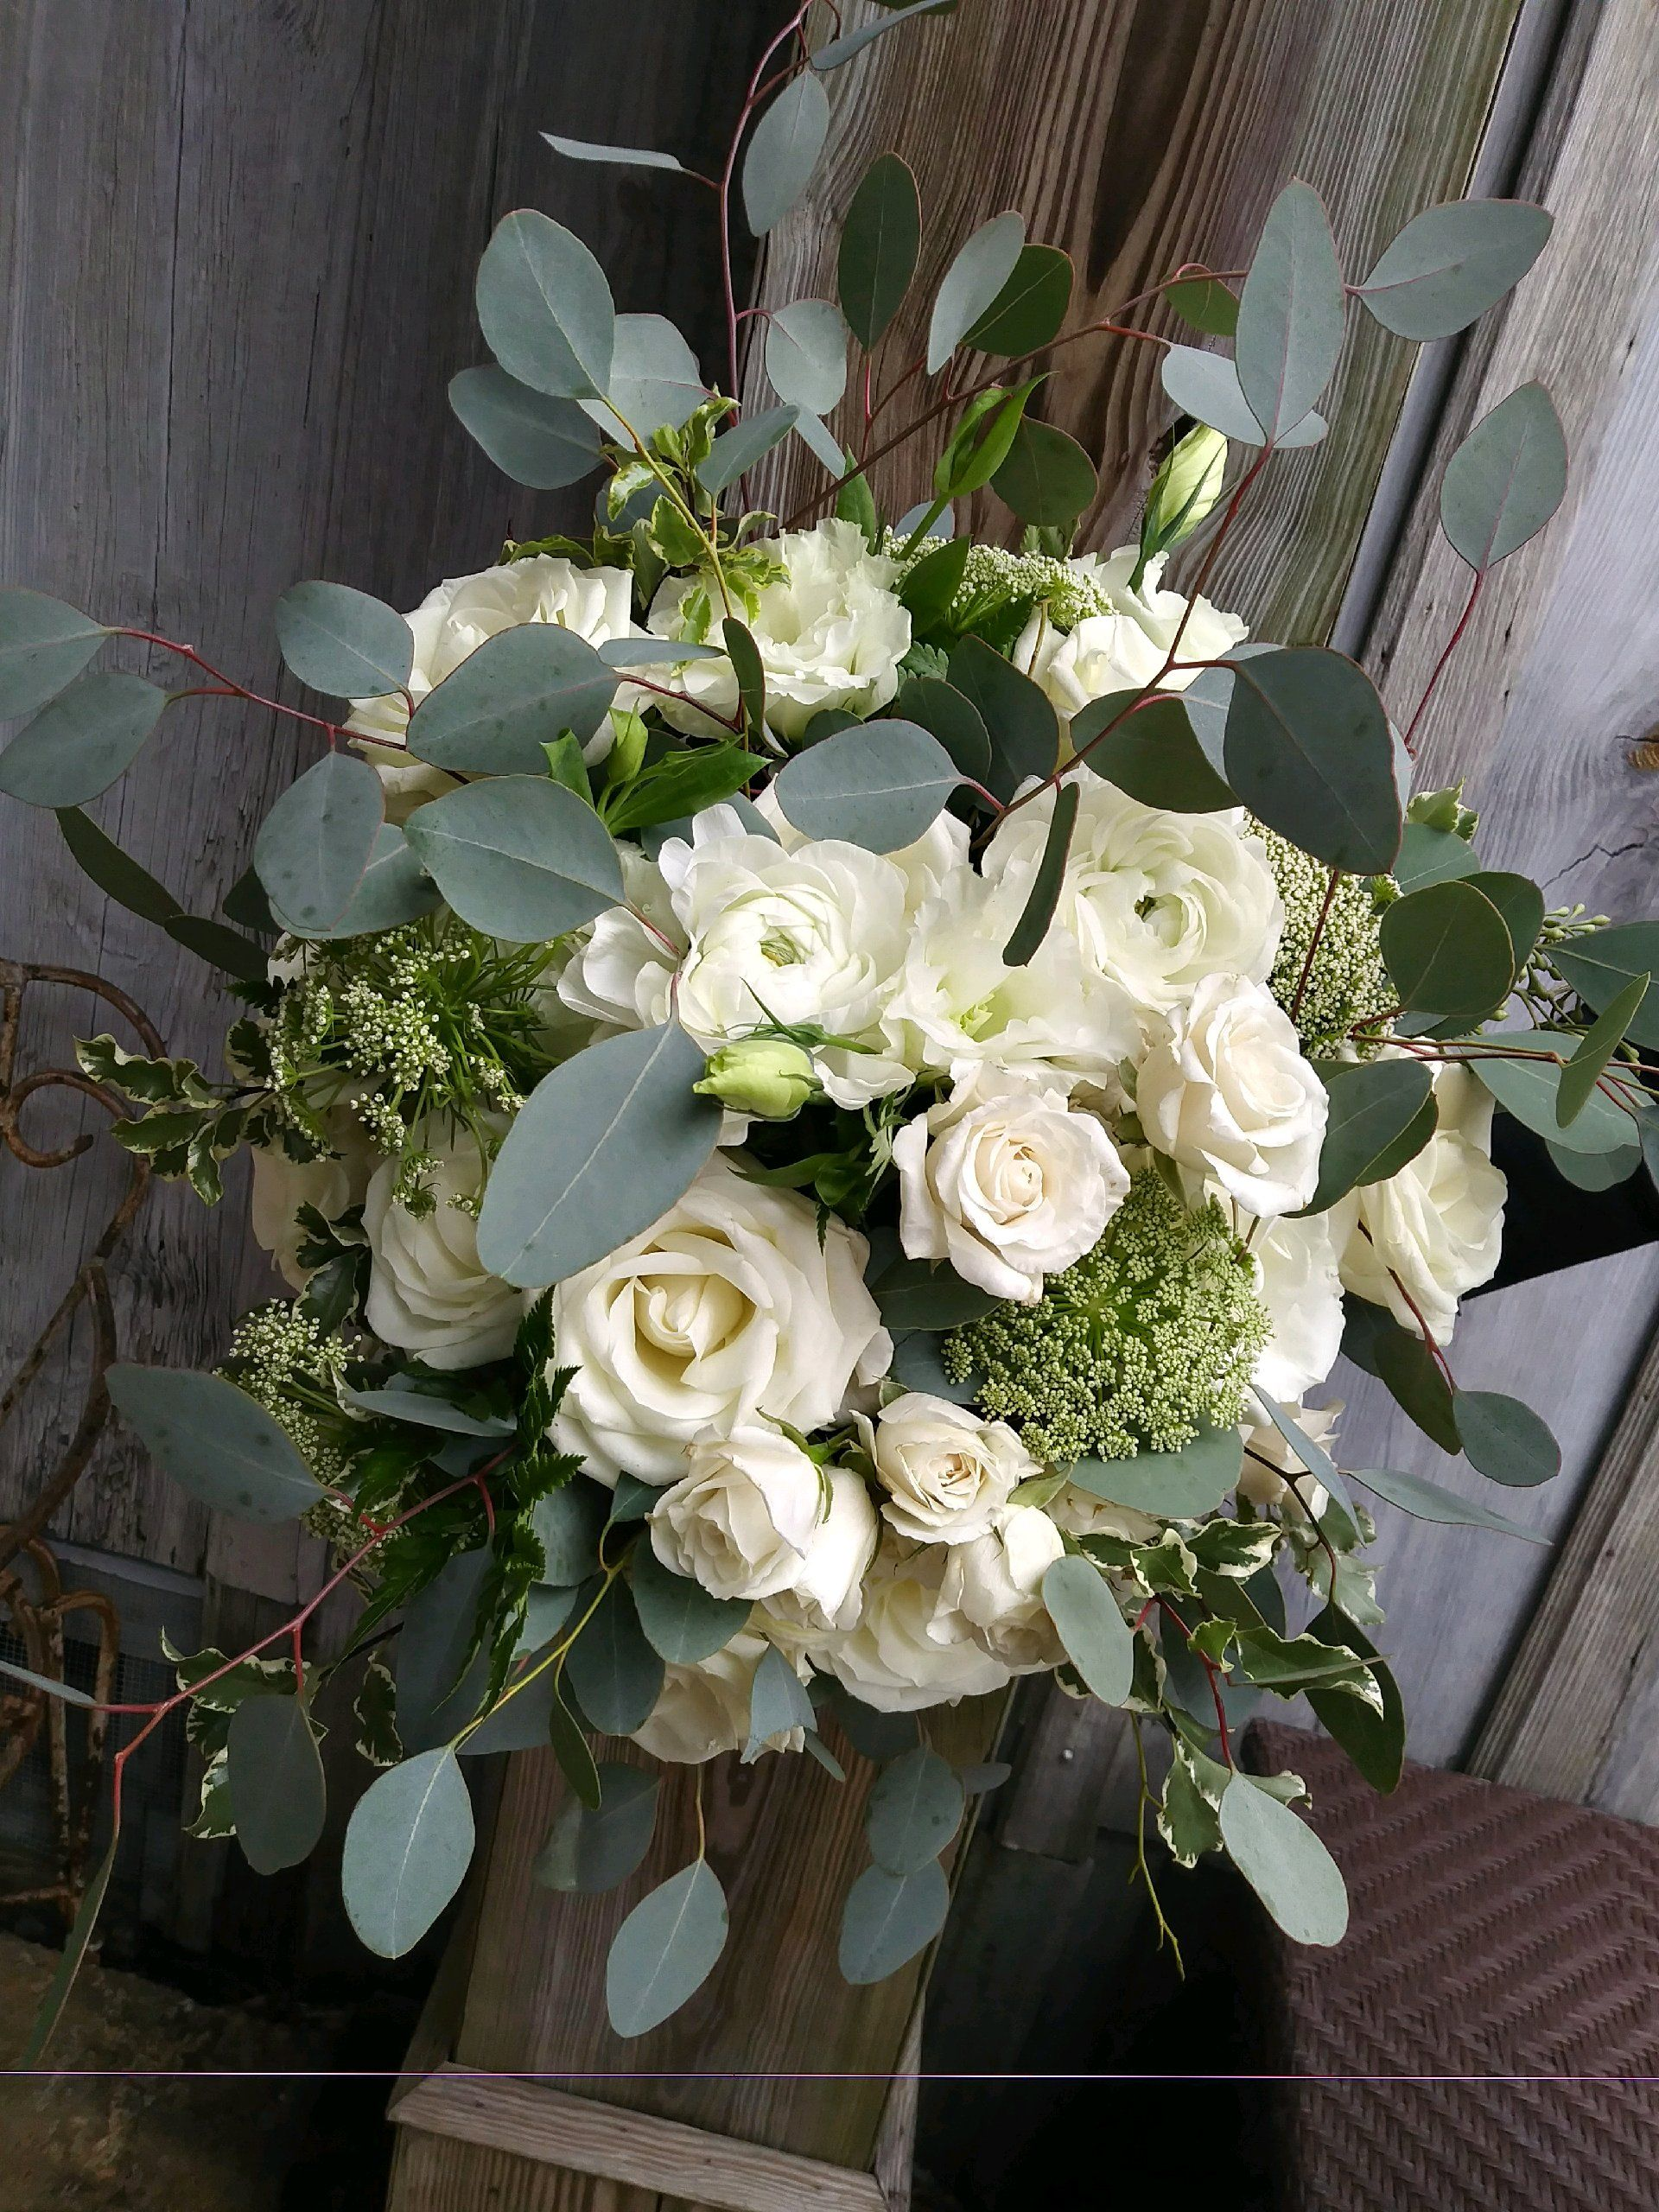 White bridal bouquet with roses, ranunculus, queen anne's